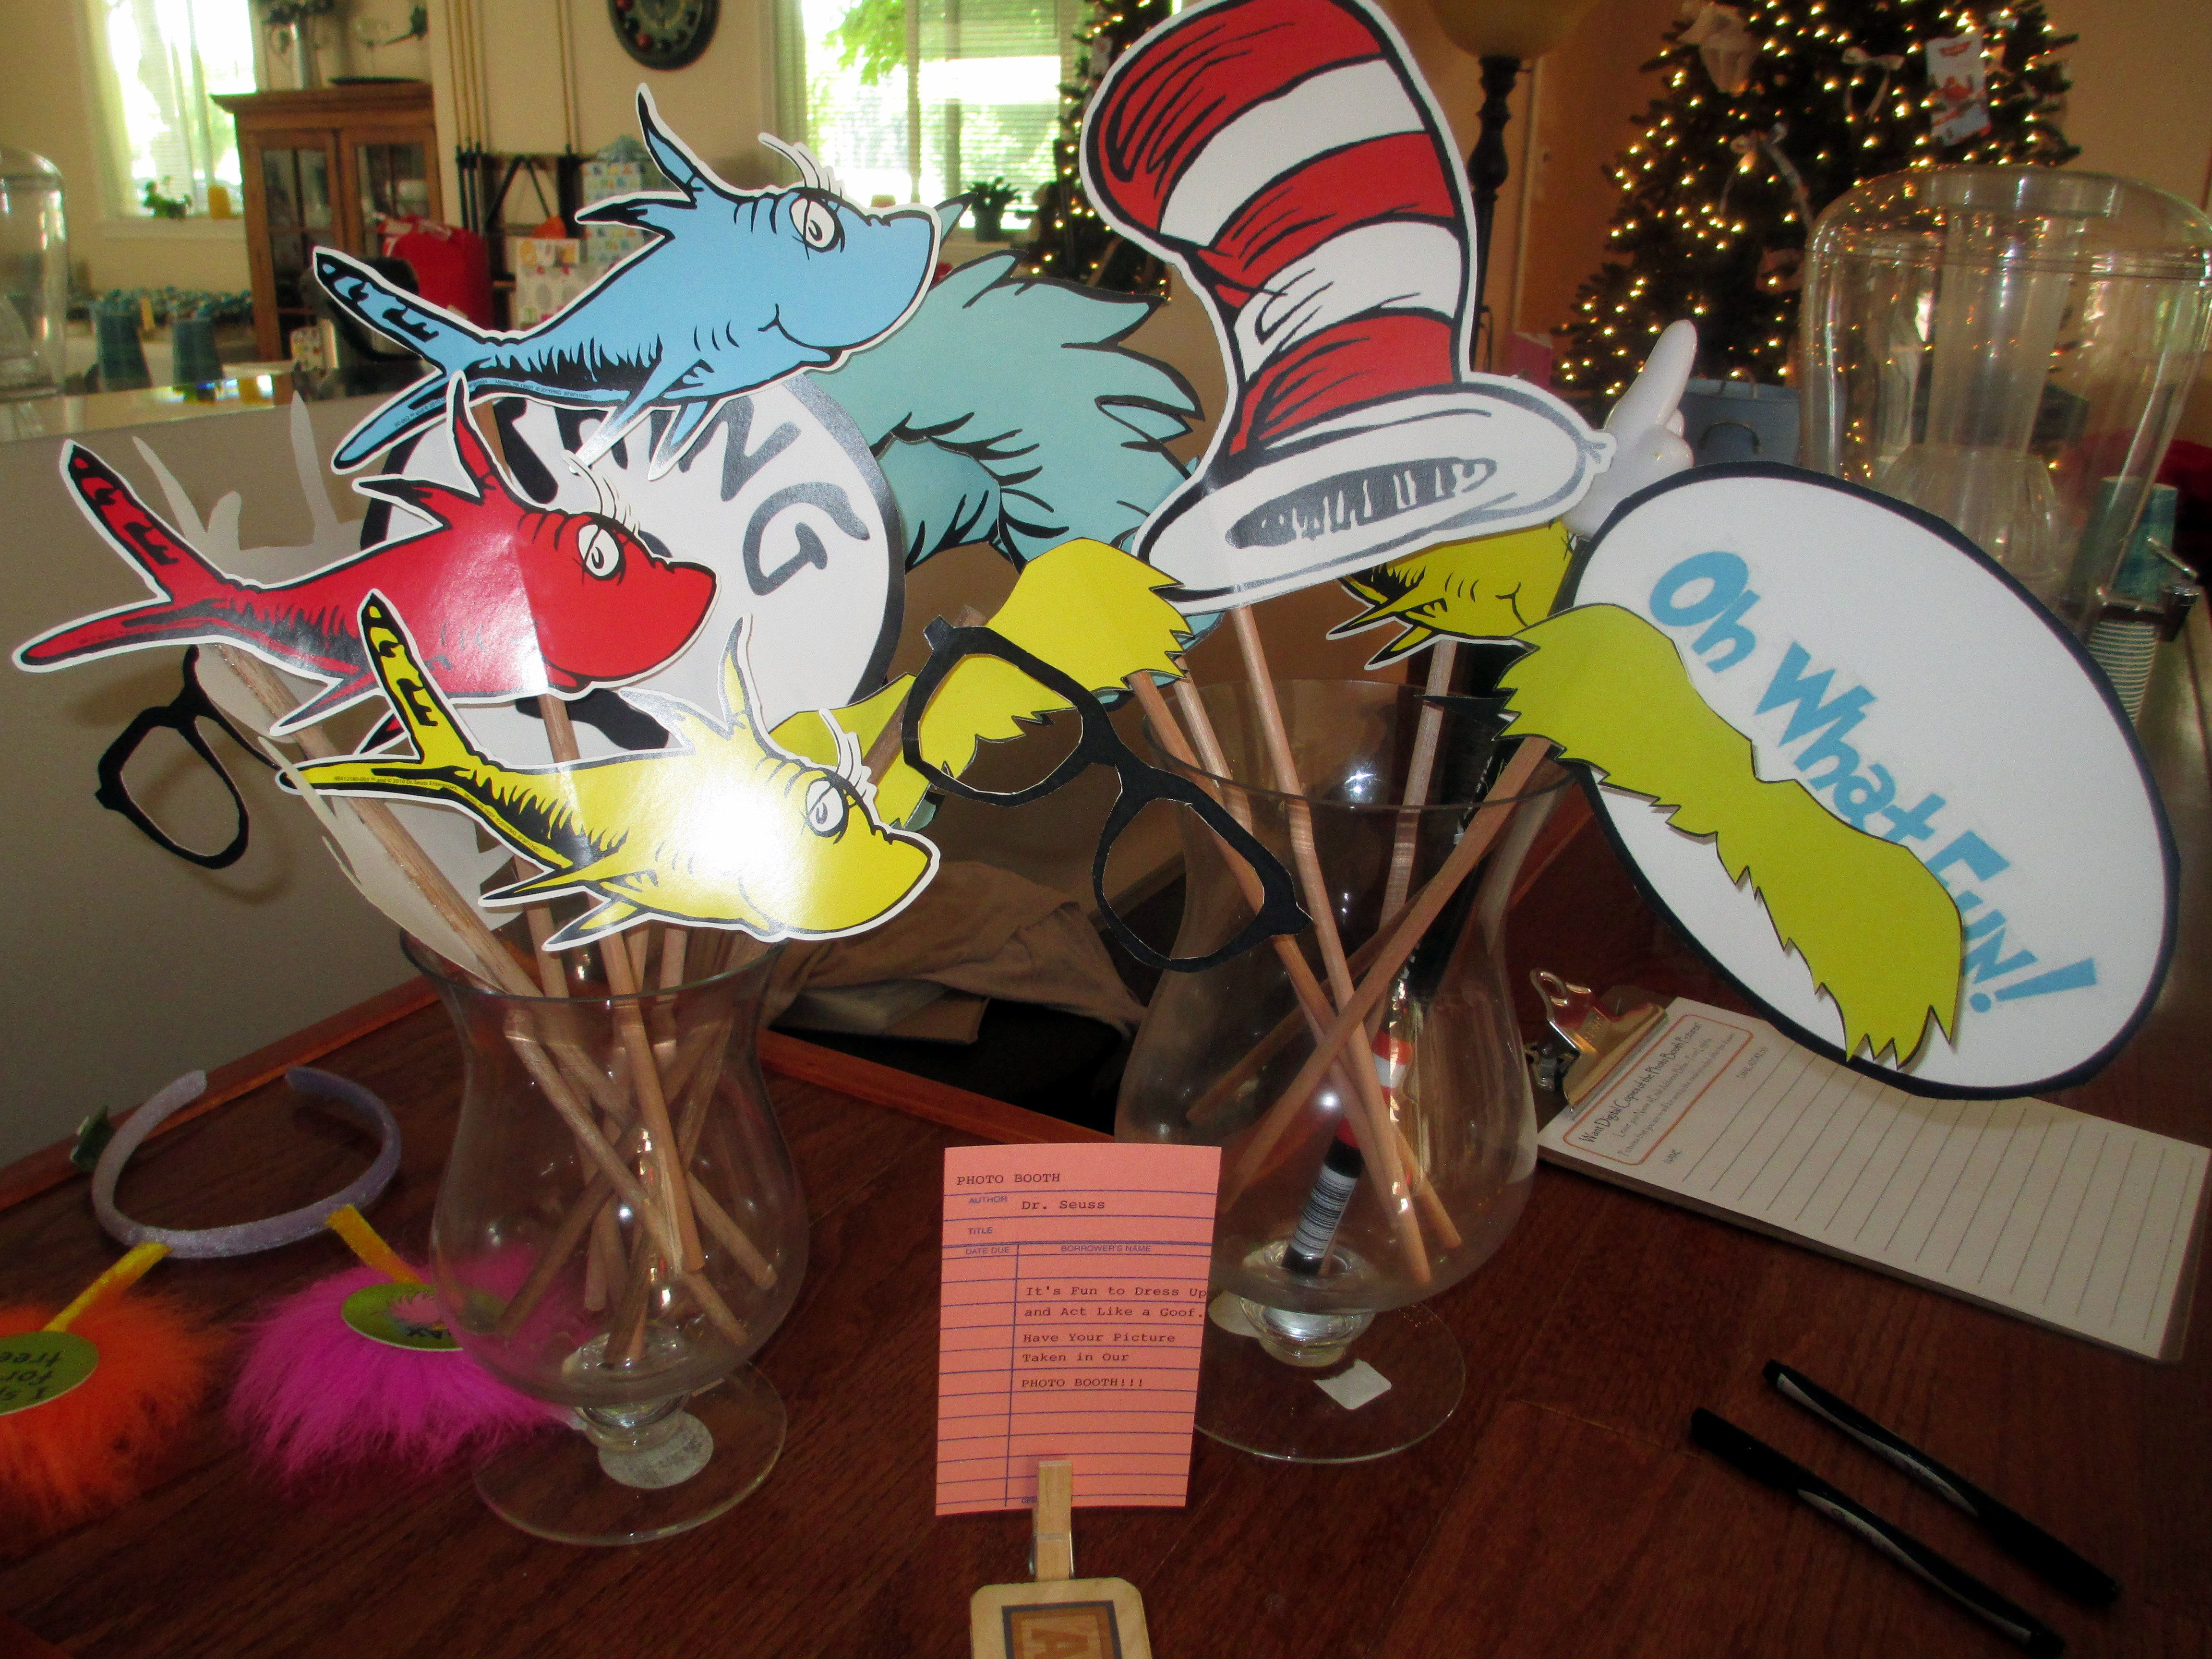 Click Here To Download Free Dr. Suess Photo Booth Props! A Photo - Free Printable Dr Seuss Photo Props